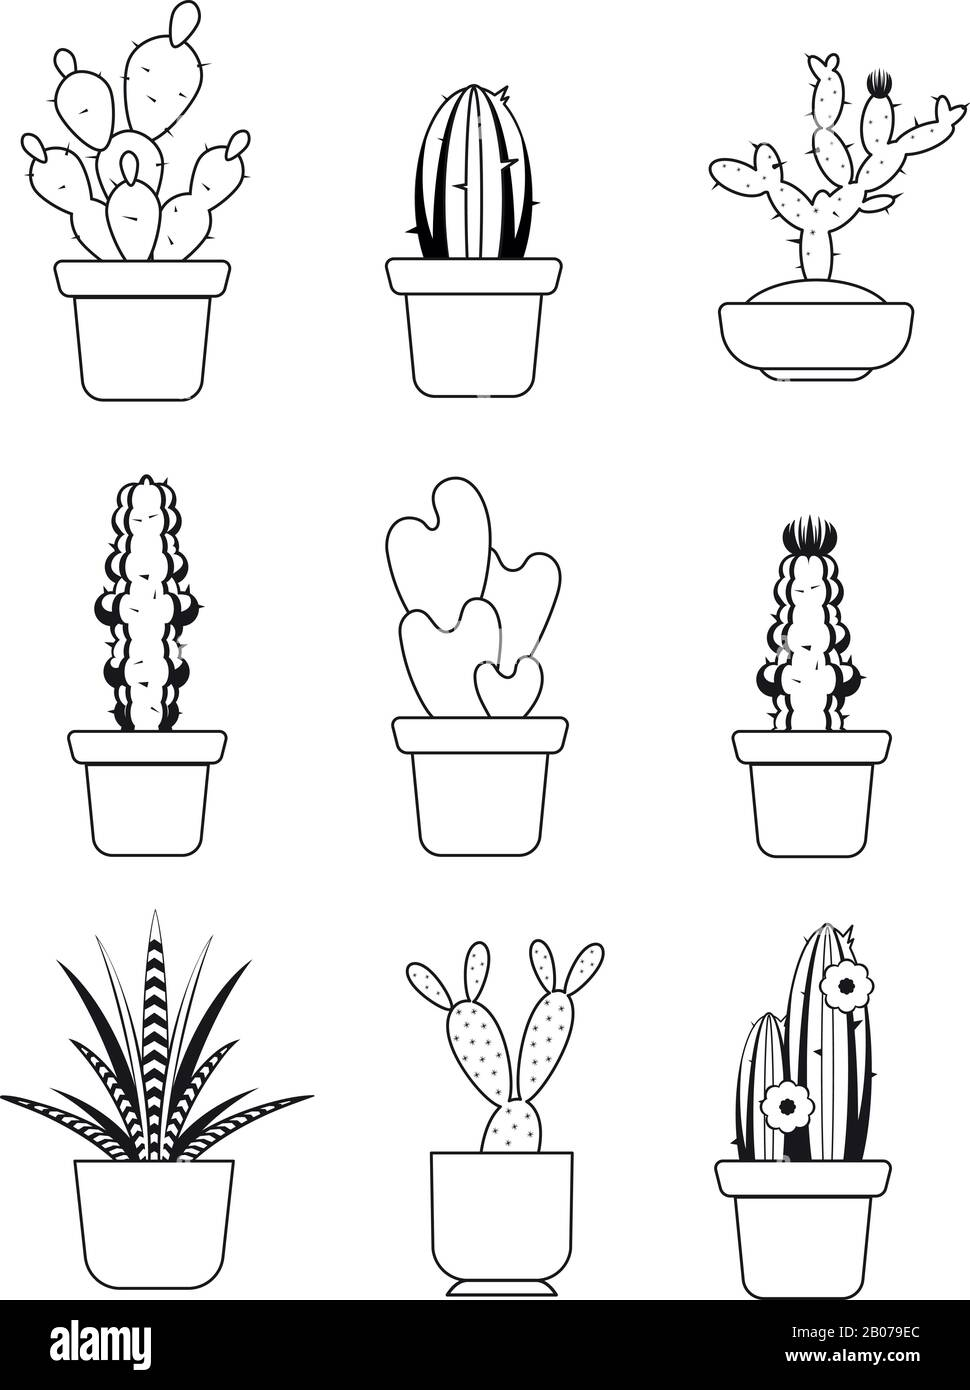 Vector Hand Drawn Outline Cactus Desert Thorn Tree Set Tropical Plant With Needle Illustration Stock Vector Image Art Alamy